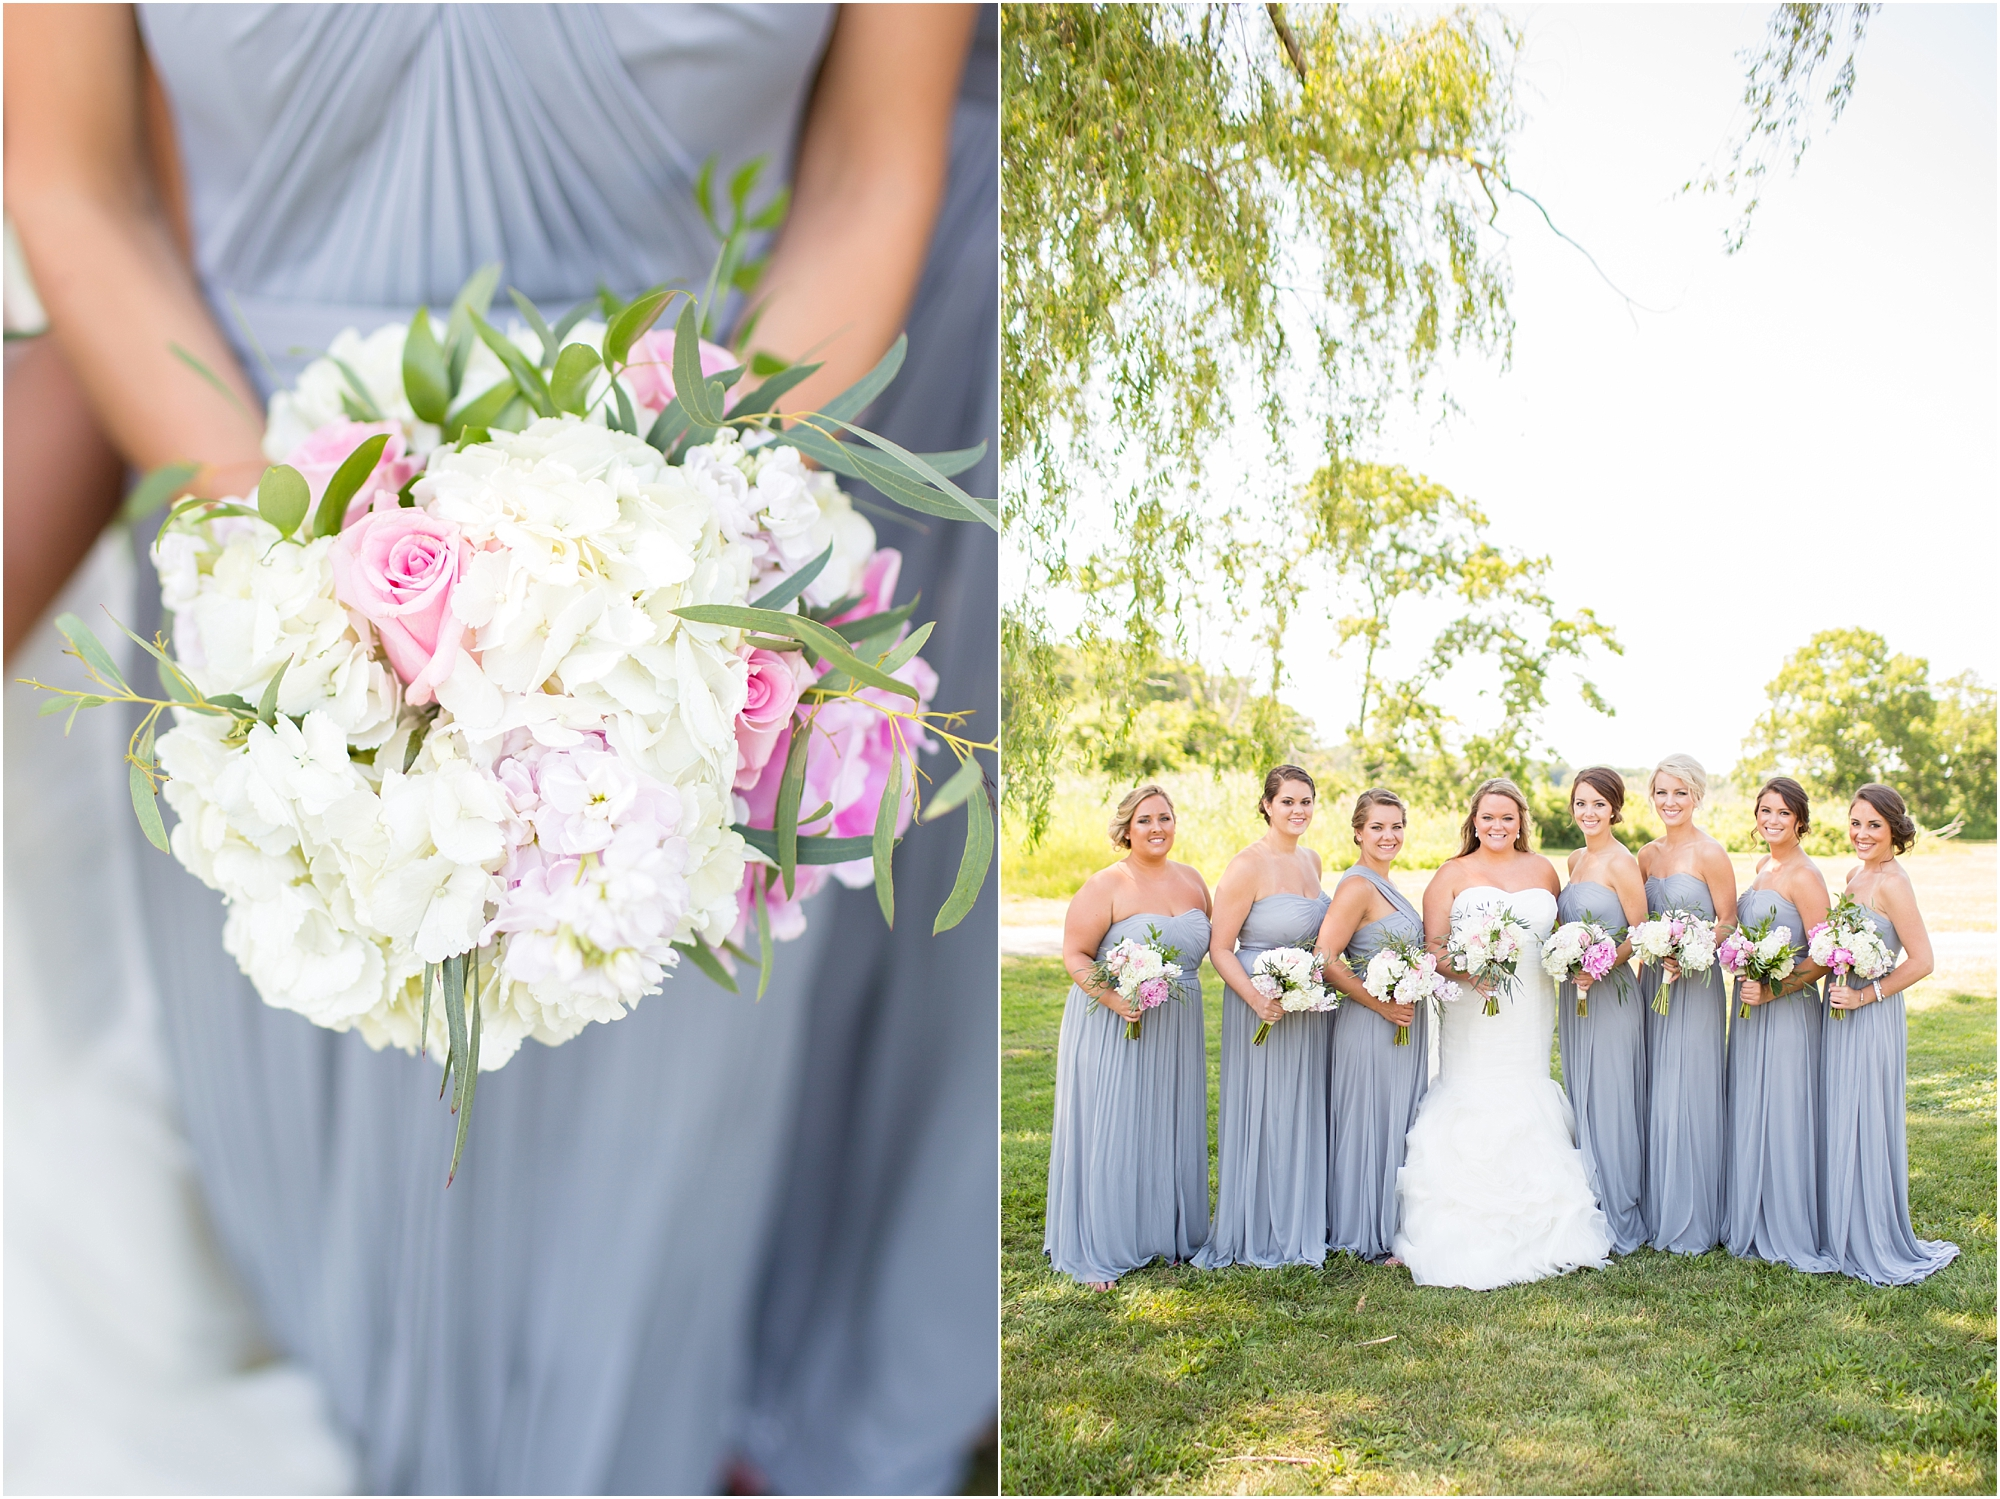 Peterson 4-Bridal Party-375_anna grace photography milford connecticut destination wedding photographer Great River Country Club photo.jpg